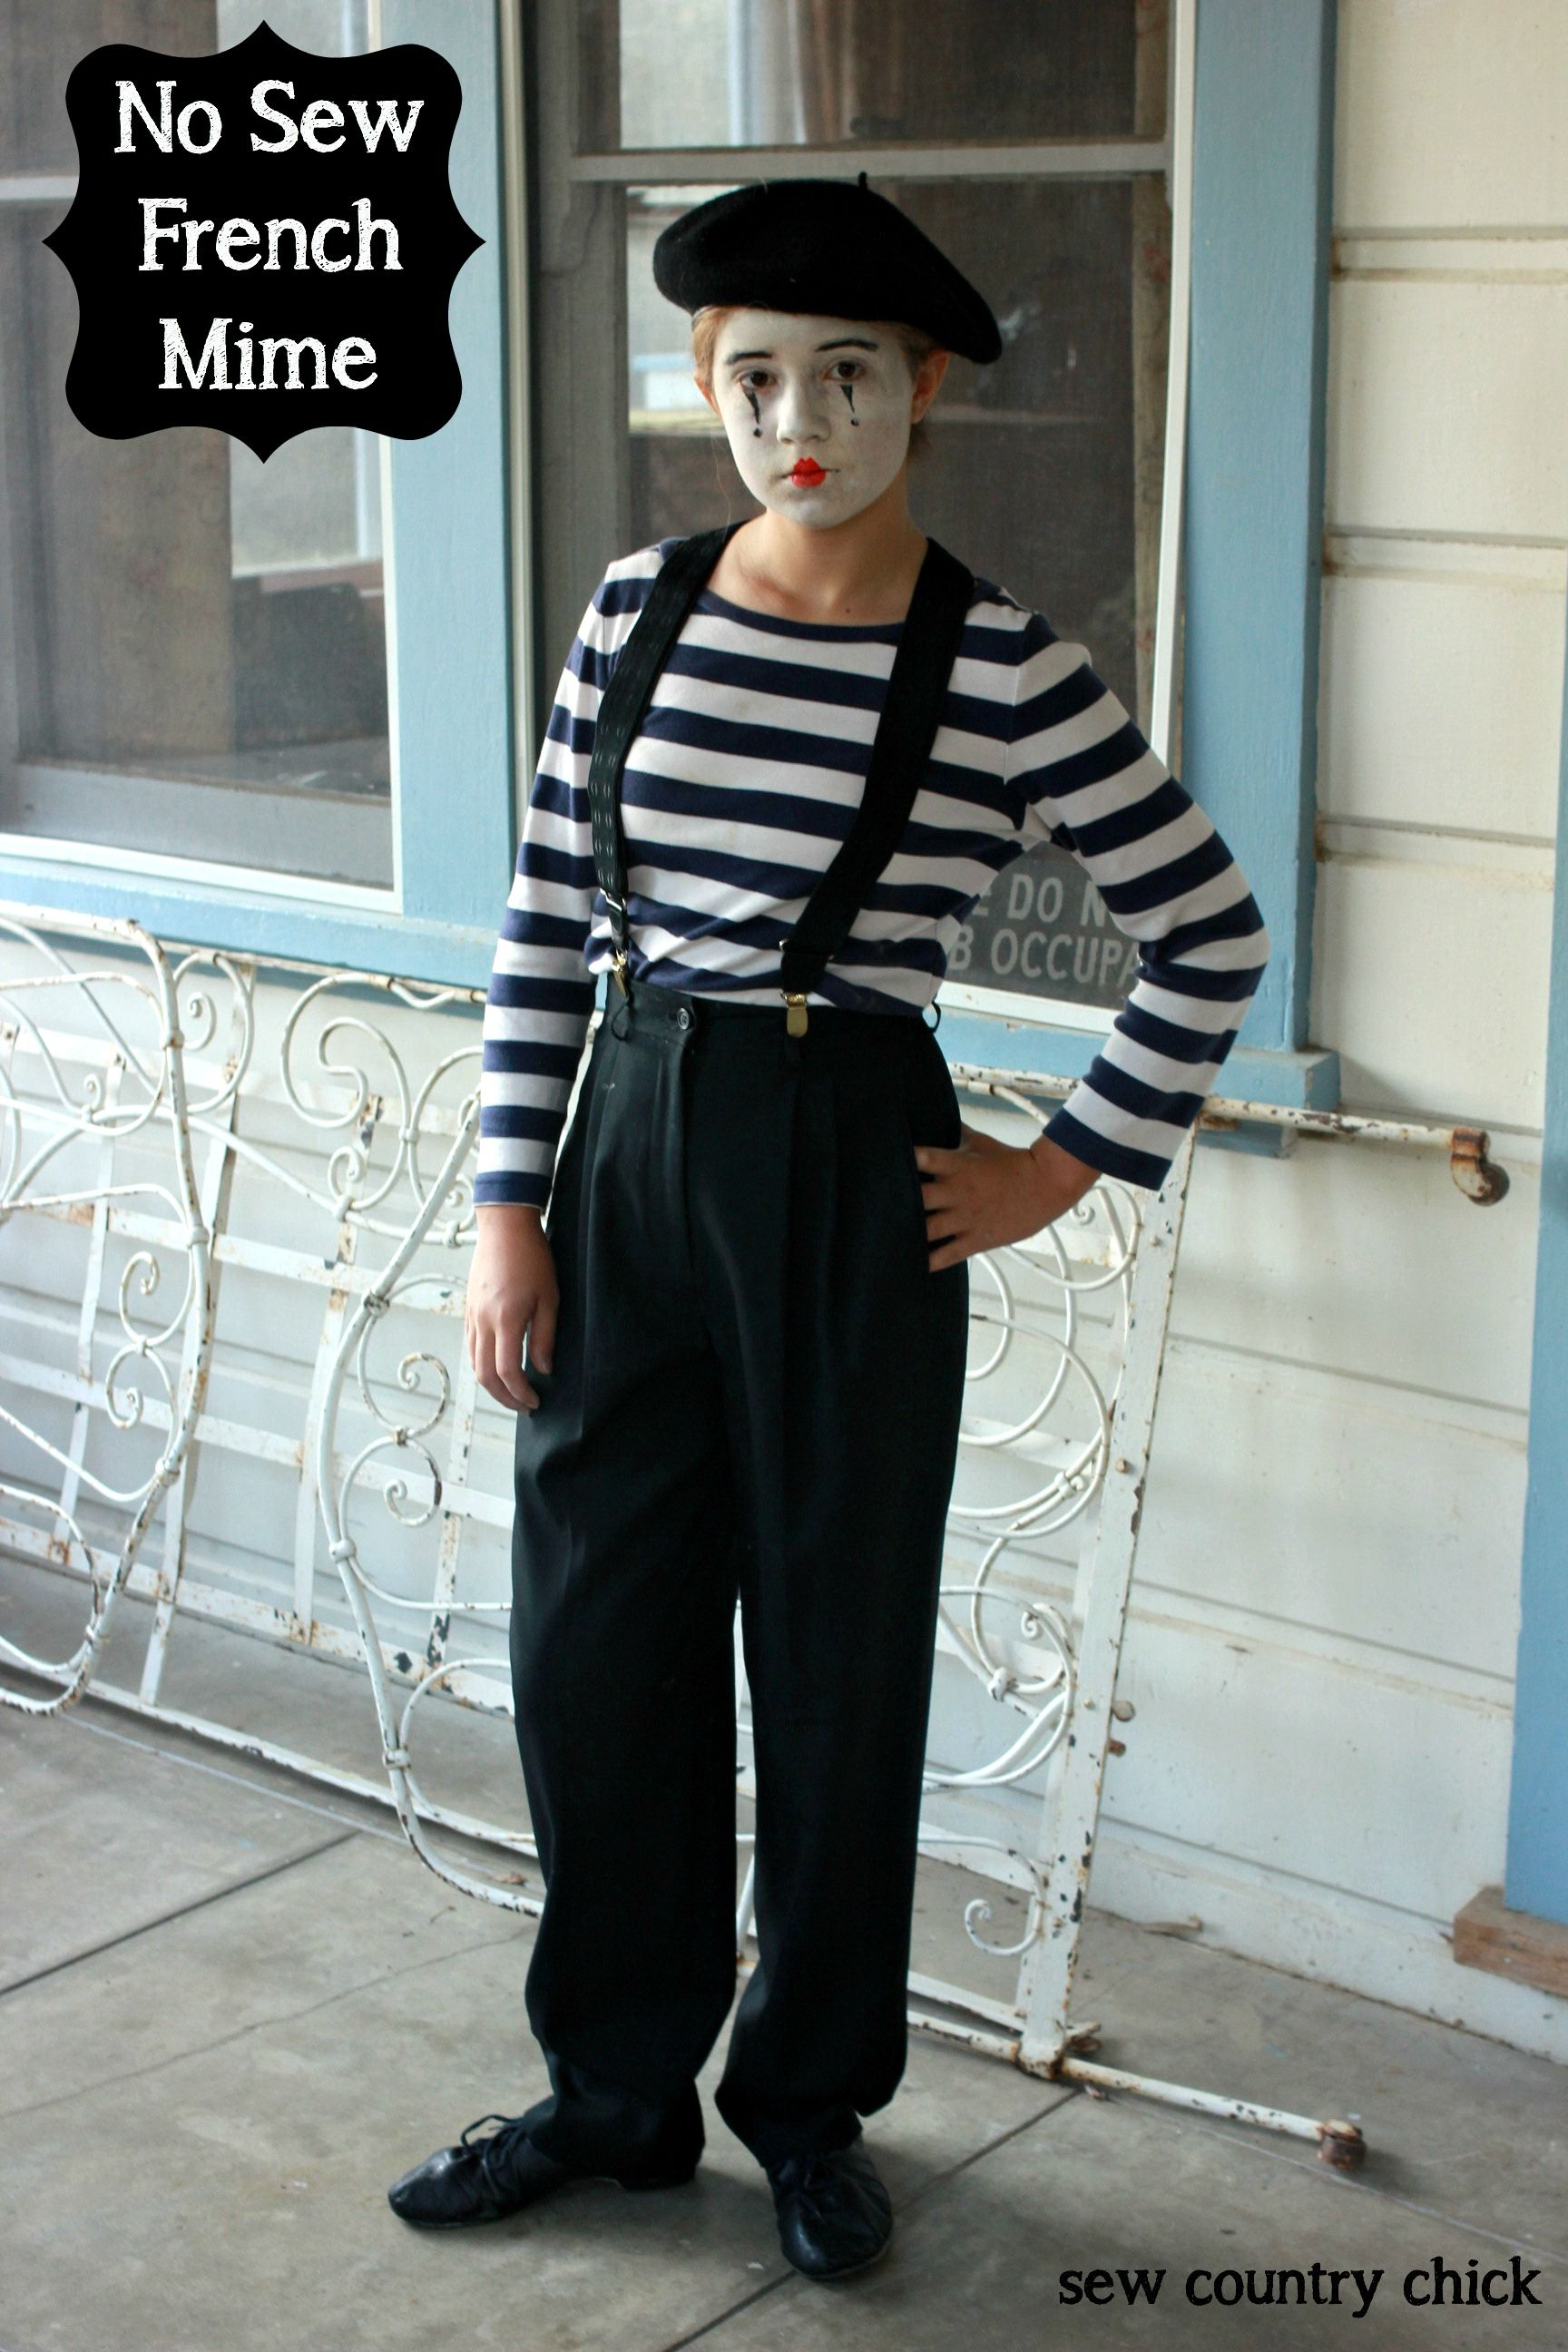 No Sew French Mime Costume Mime costume, Diy costumes